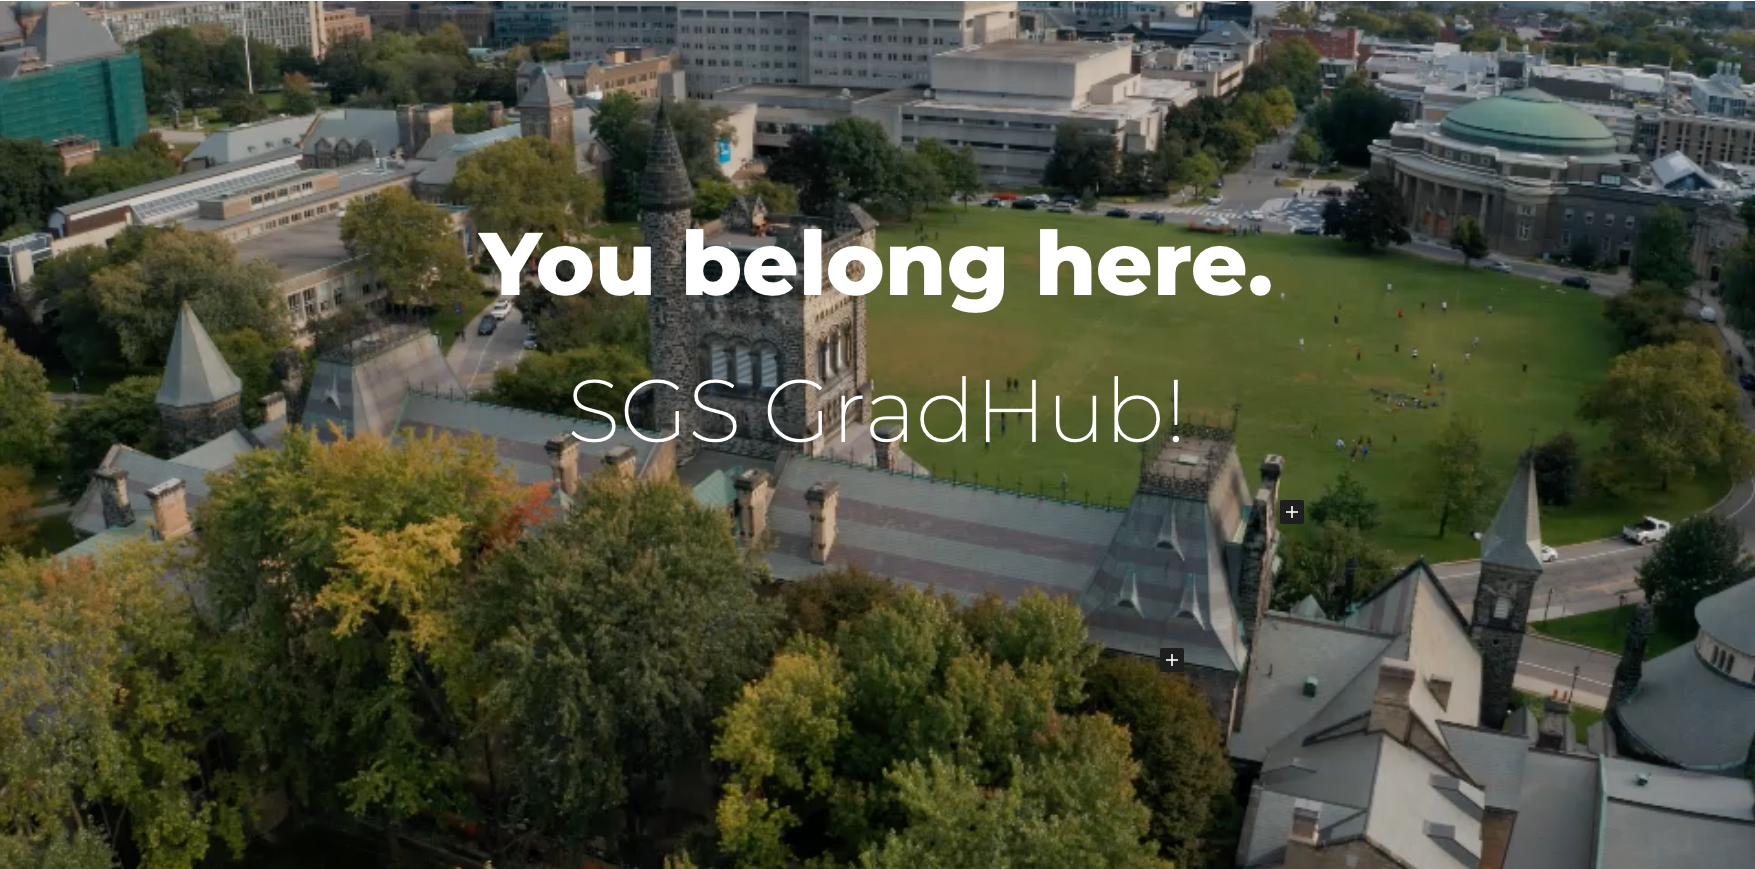 """Aerial photo of U of T campus with """"You belong here - SGS GradHub!"""" written in white text."""